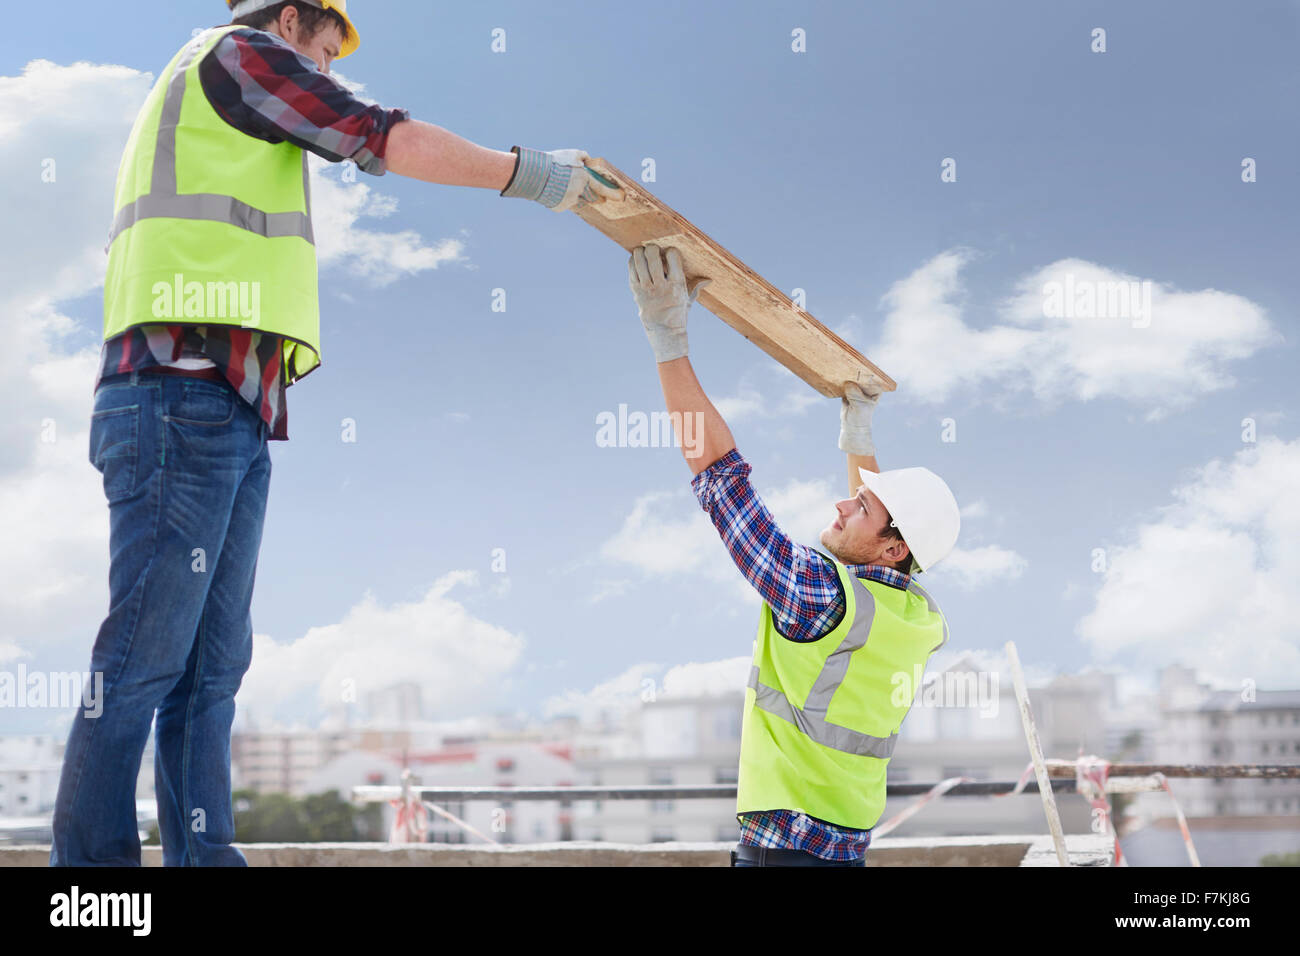 Construction workers lifting part at highrise construction site - Stock Image